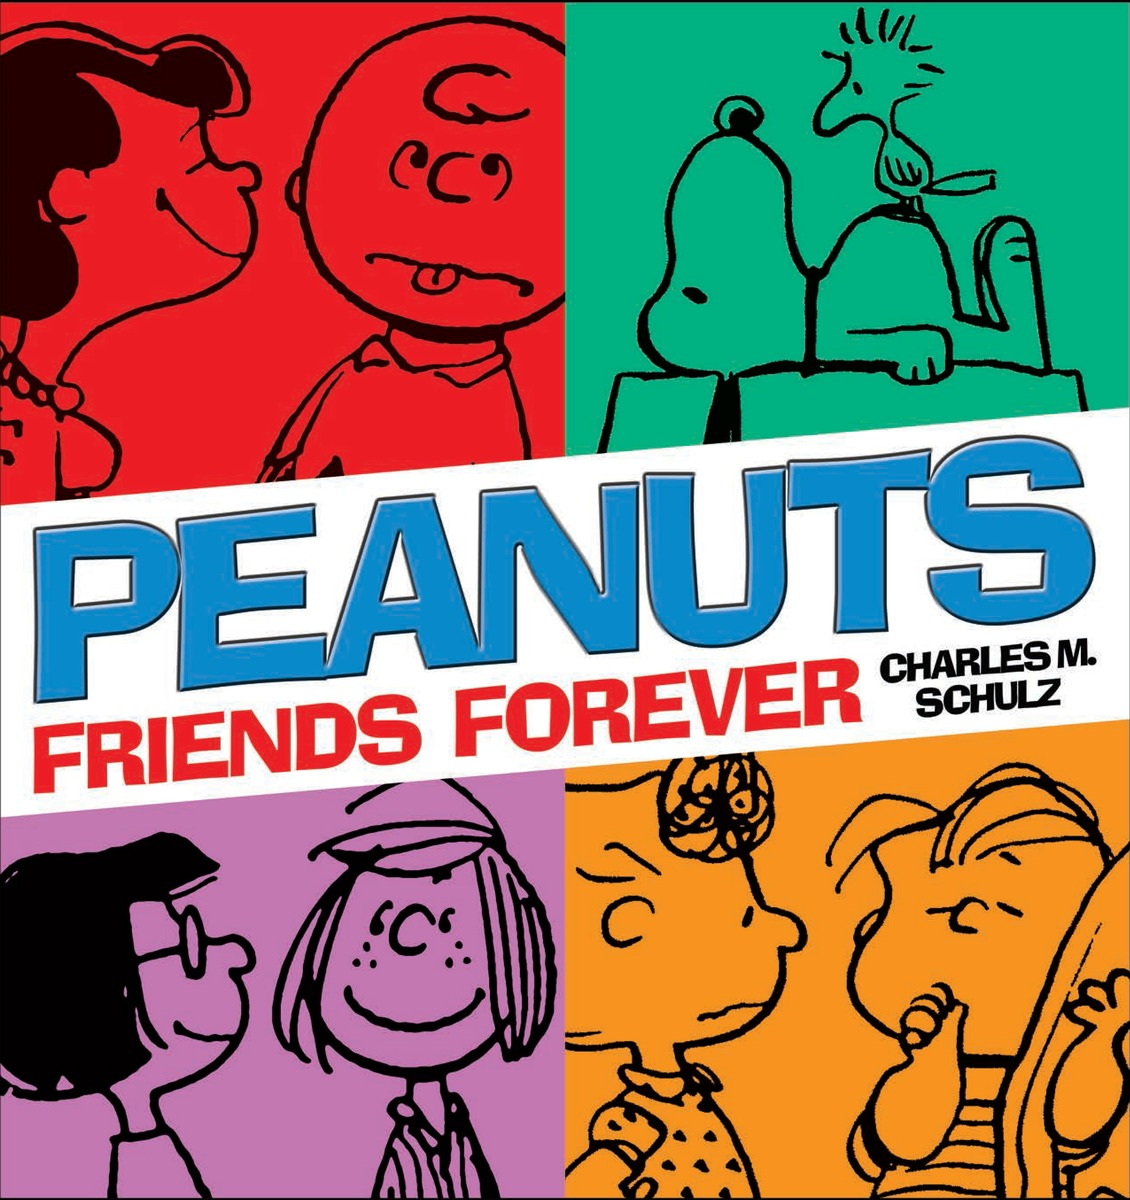 PEANUTS: FRIENDS FOREVER friends forever